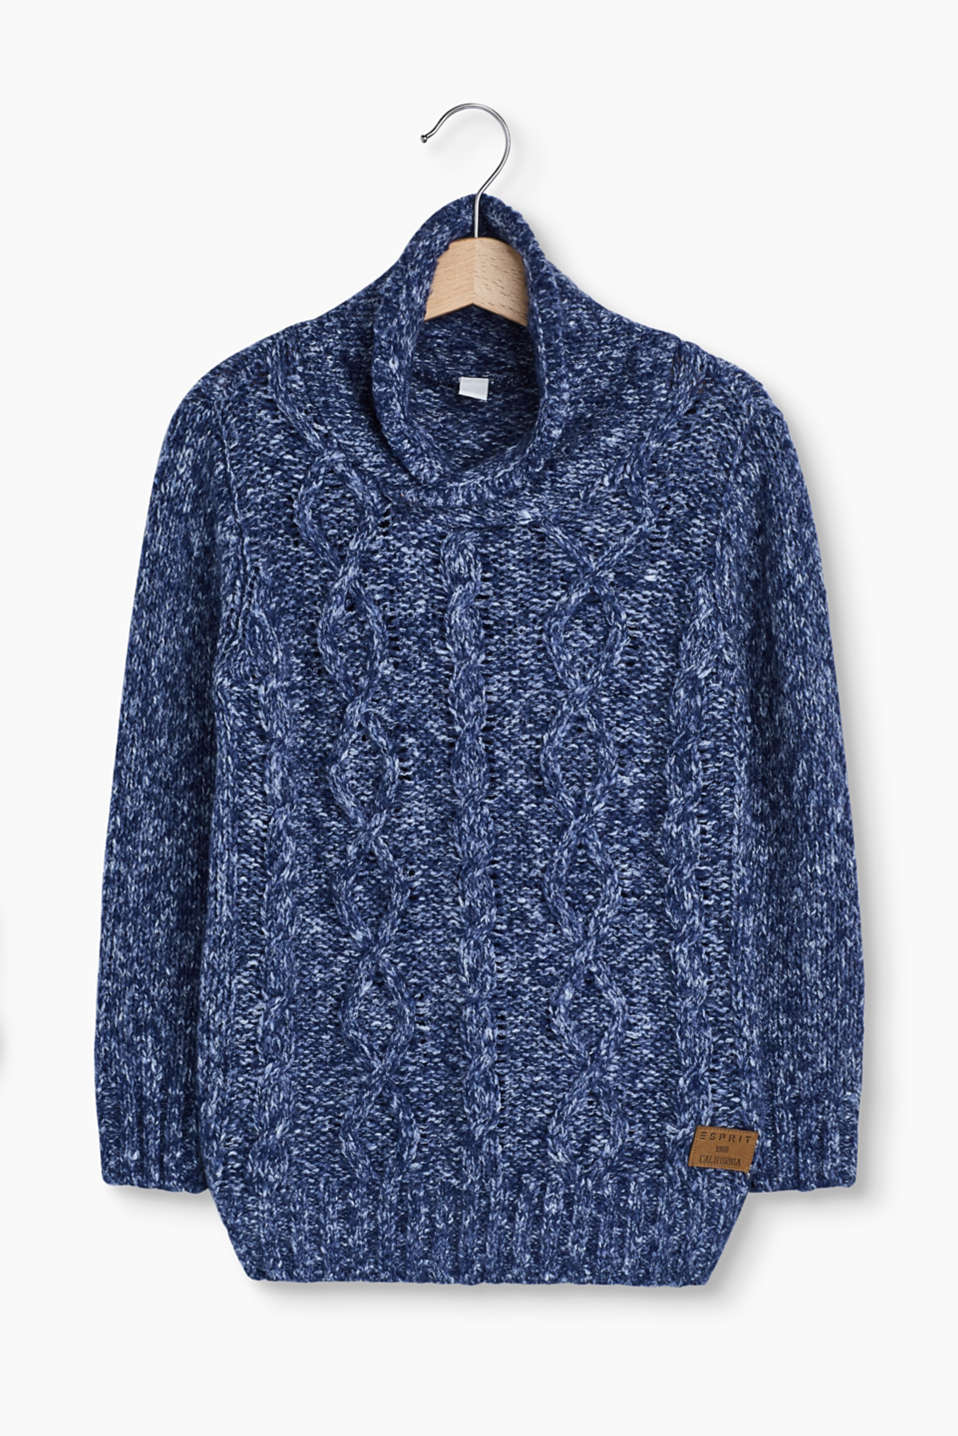 Esprit - Cable knit jumper with a shawl collar